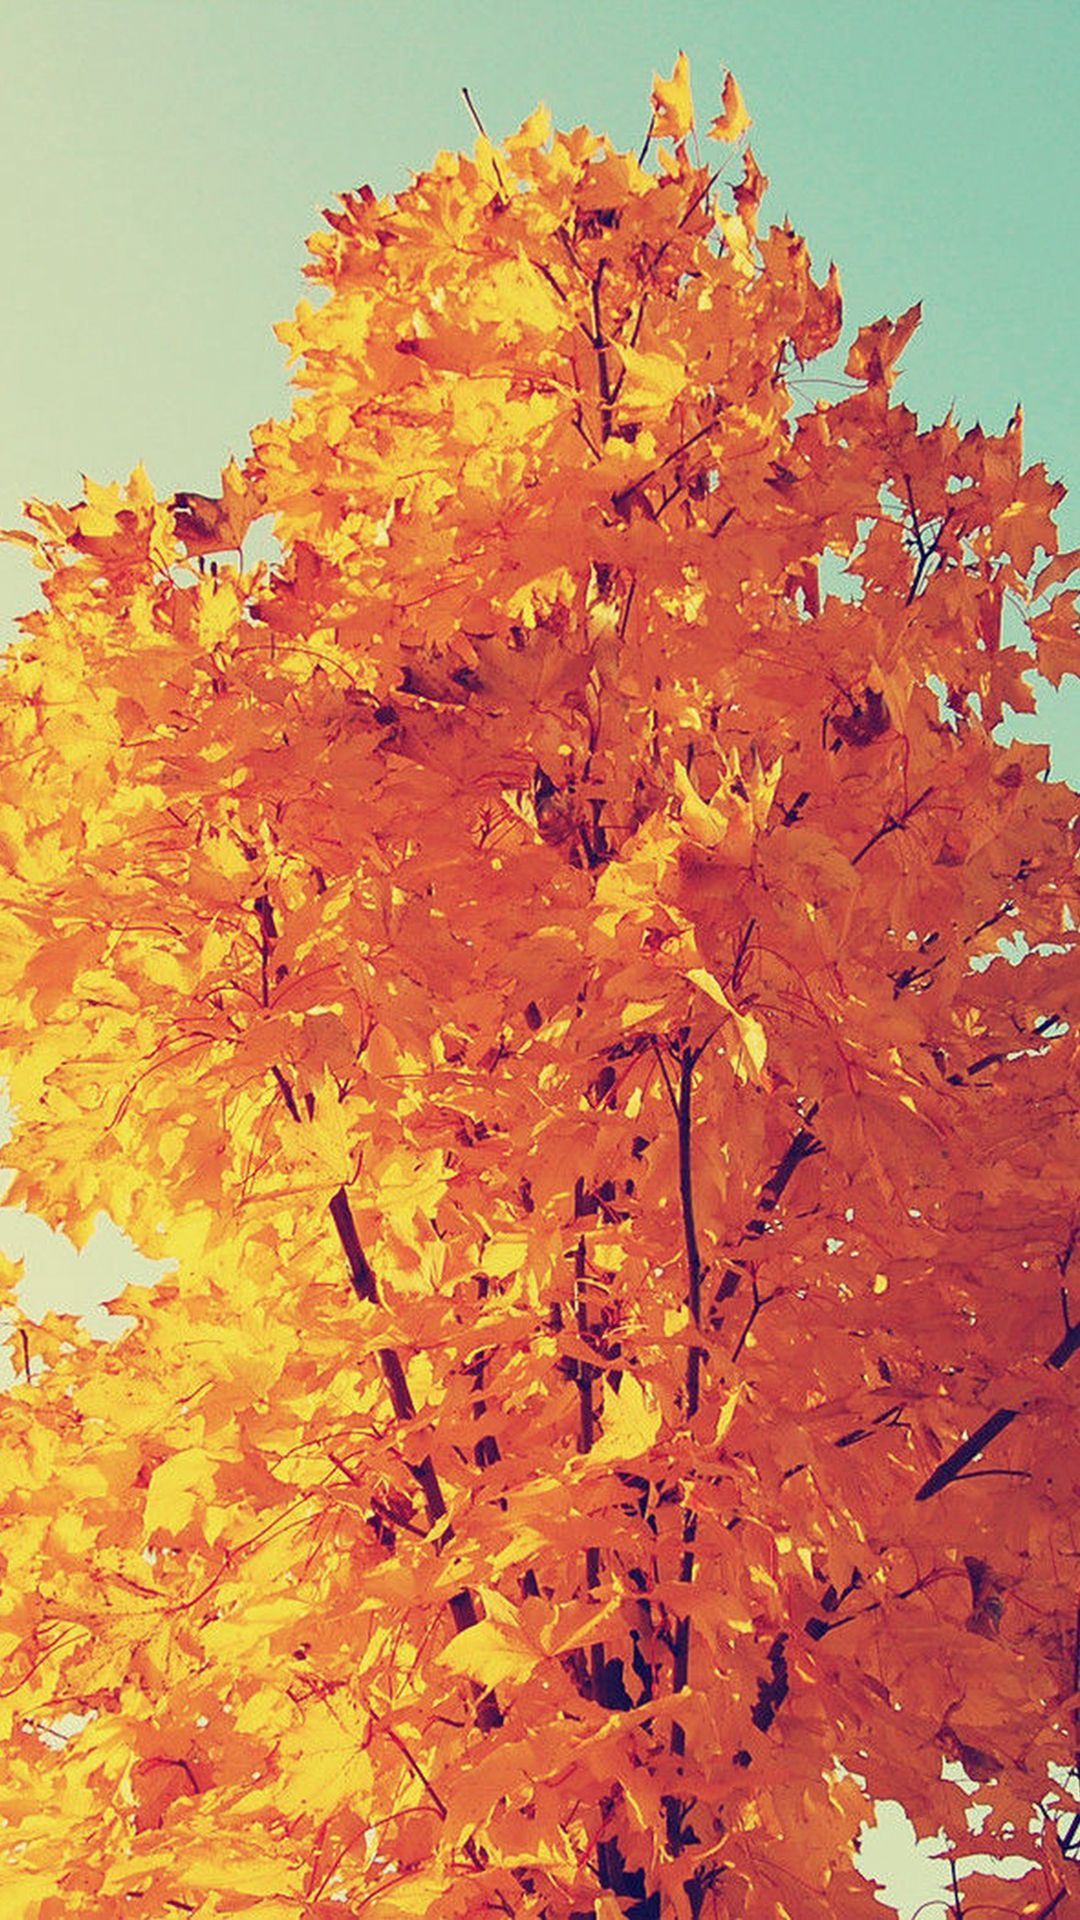 Colorful Autumn Tree Leaves Iphone 6 Plus Wallpaper Iphone Wallpaper Iphone Wallpaper Fall Cute Fall Wallpaper